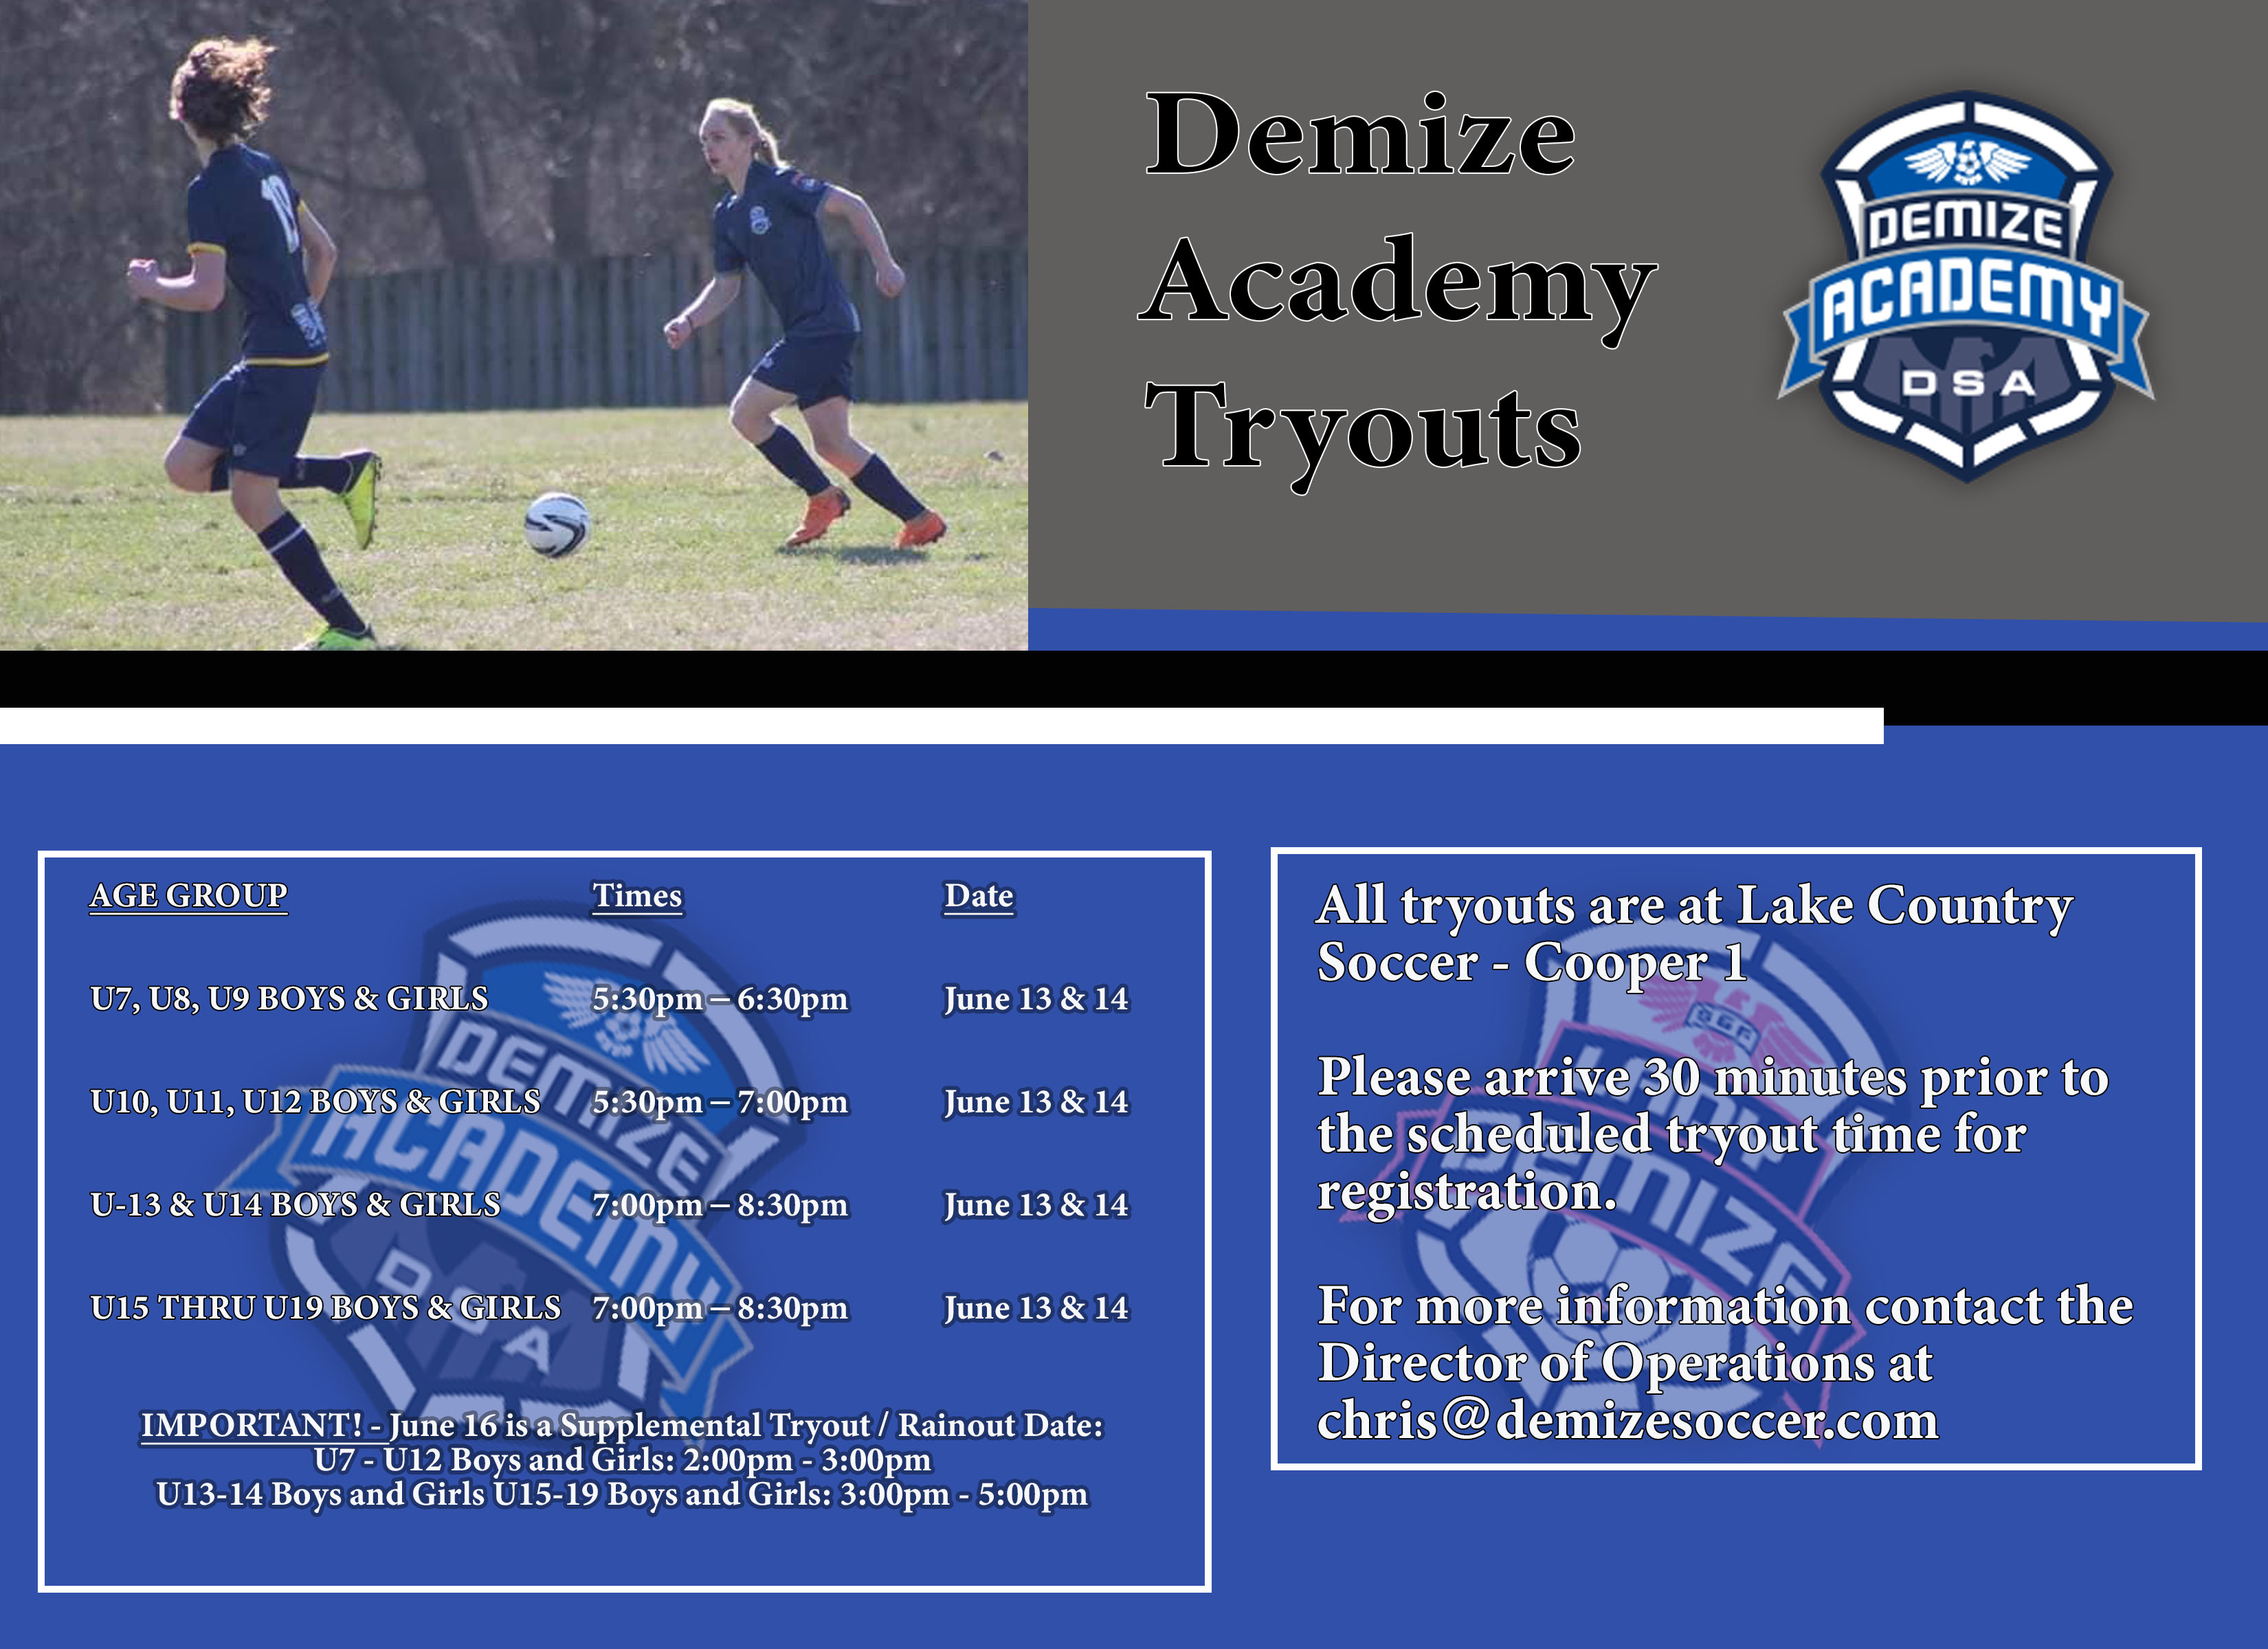 Demize Academy tryout dates and times in June